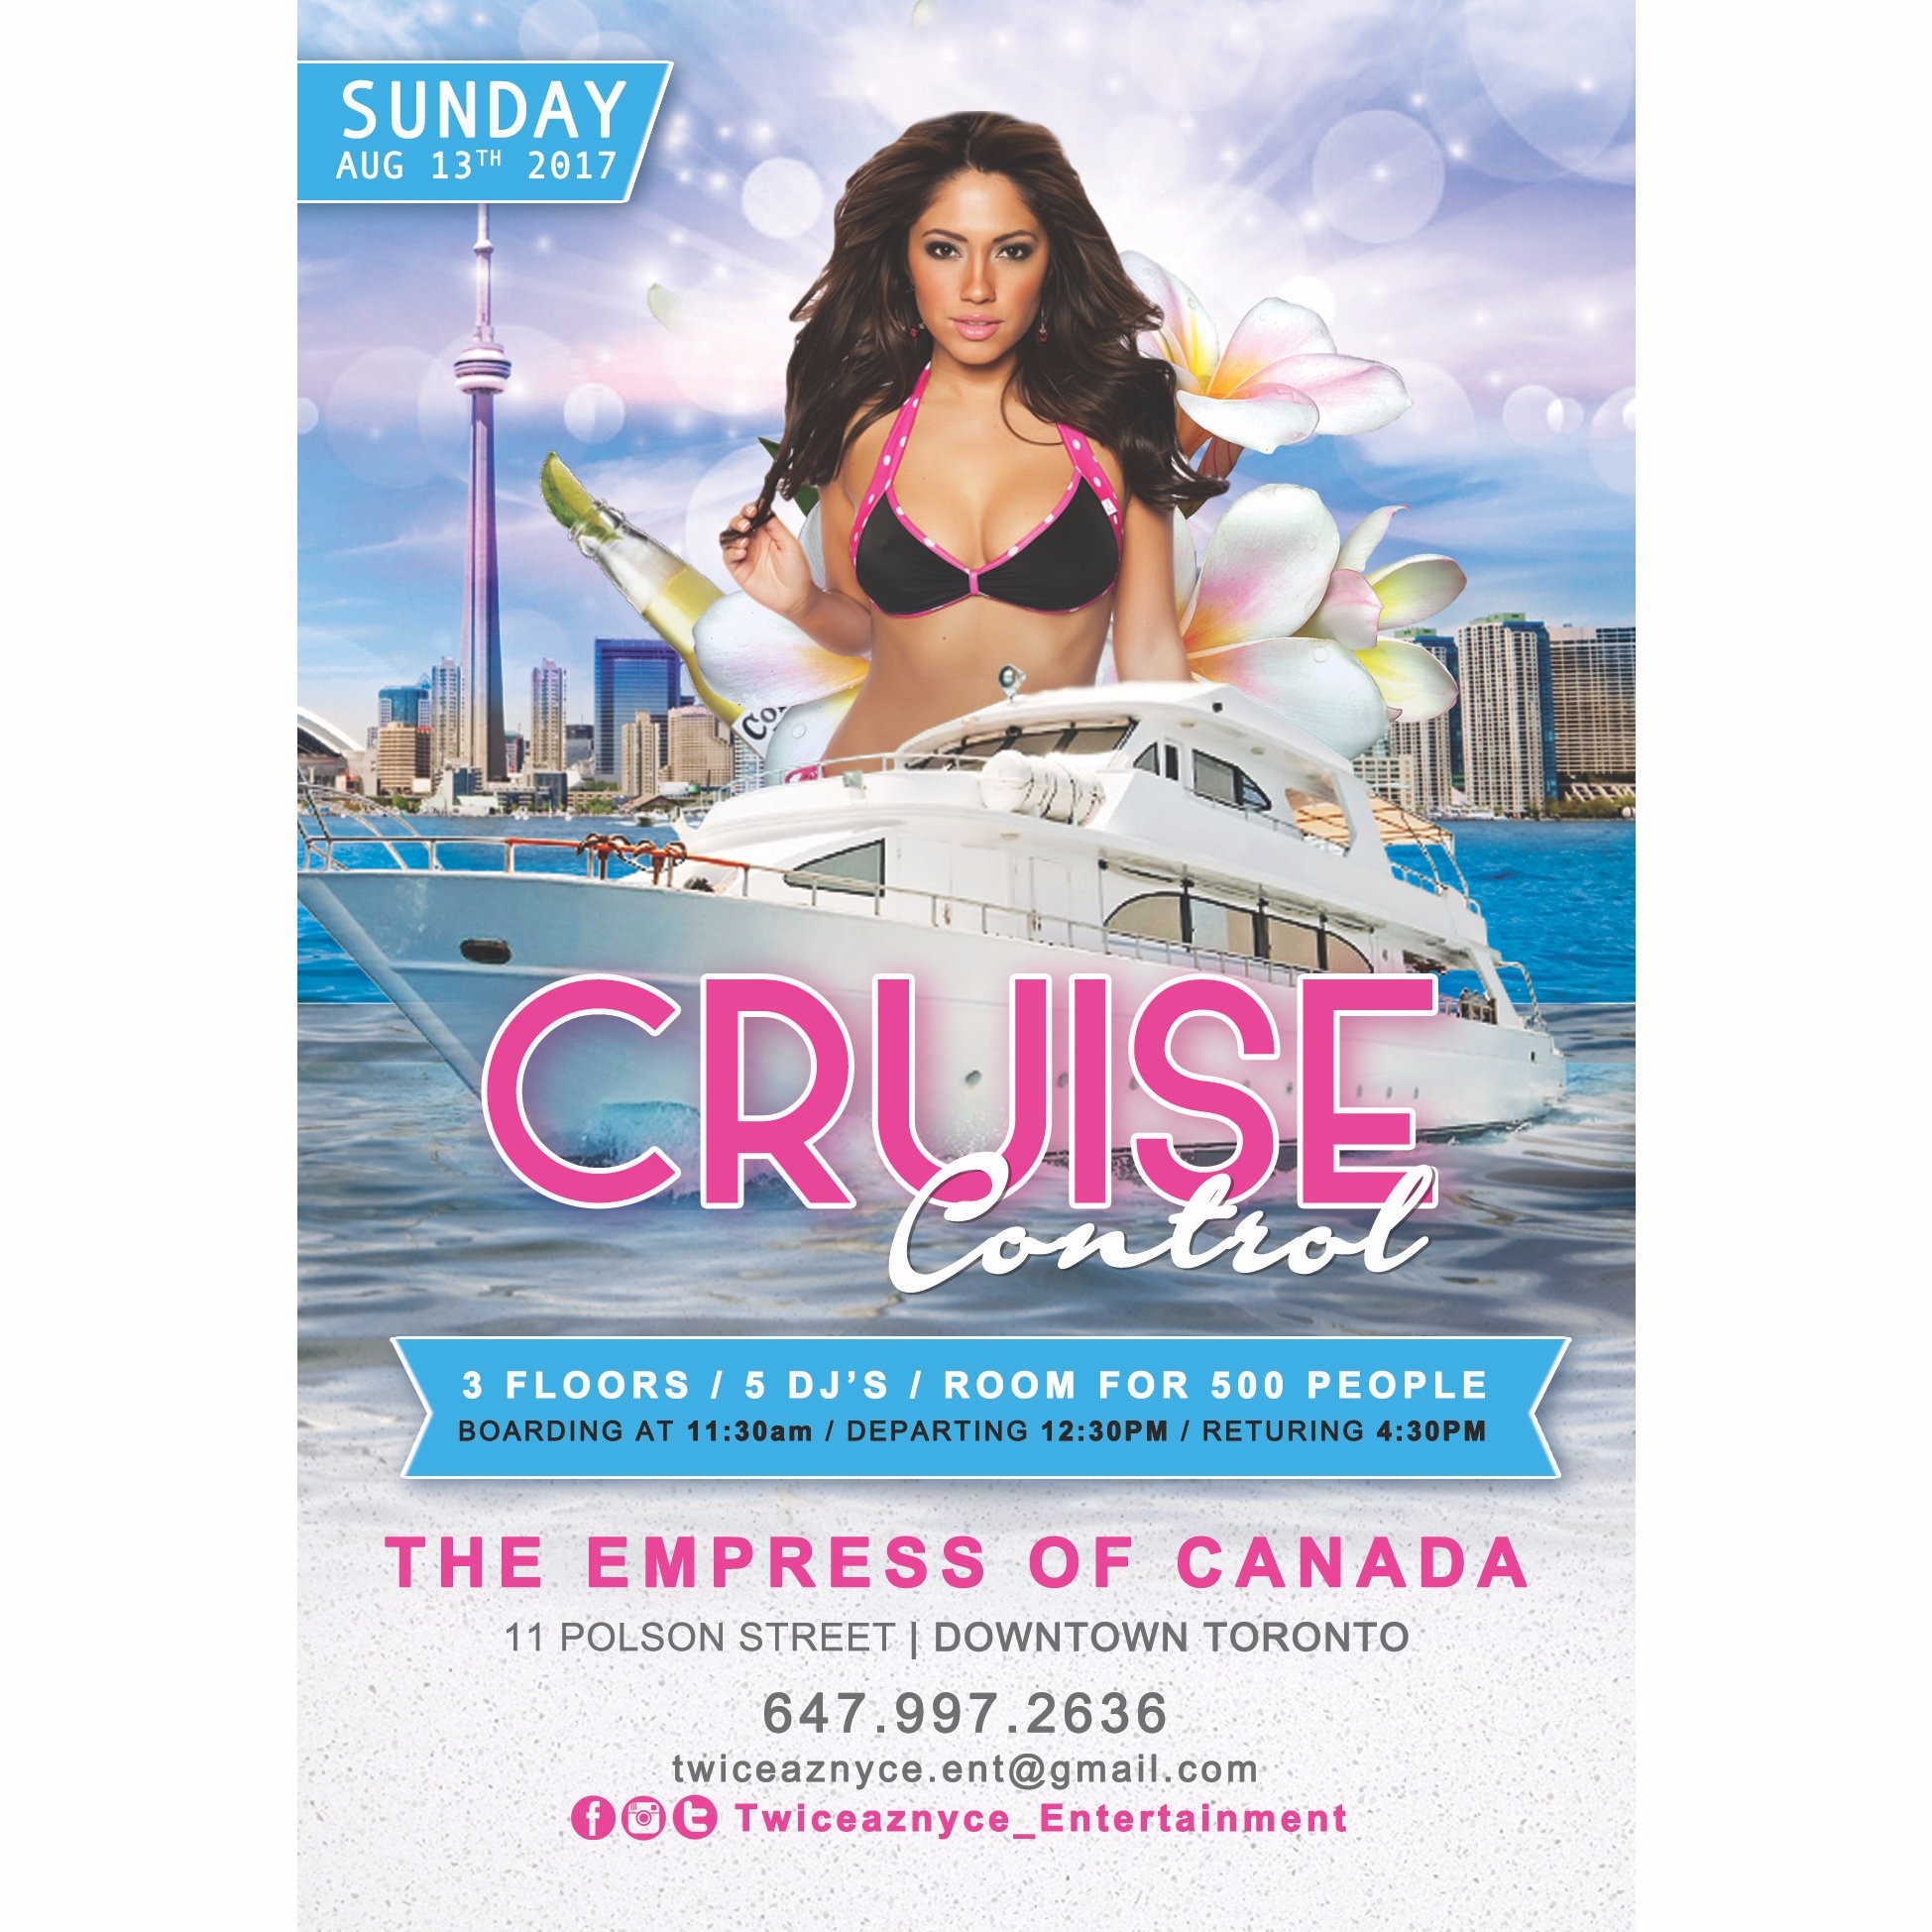 Cruise Control ... The Official Top 40 Booze Cruise for Summer 17'